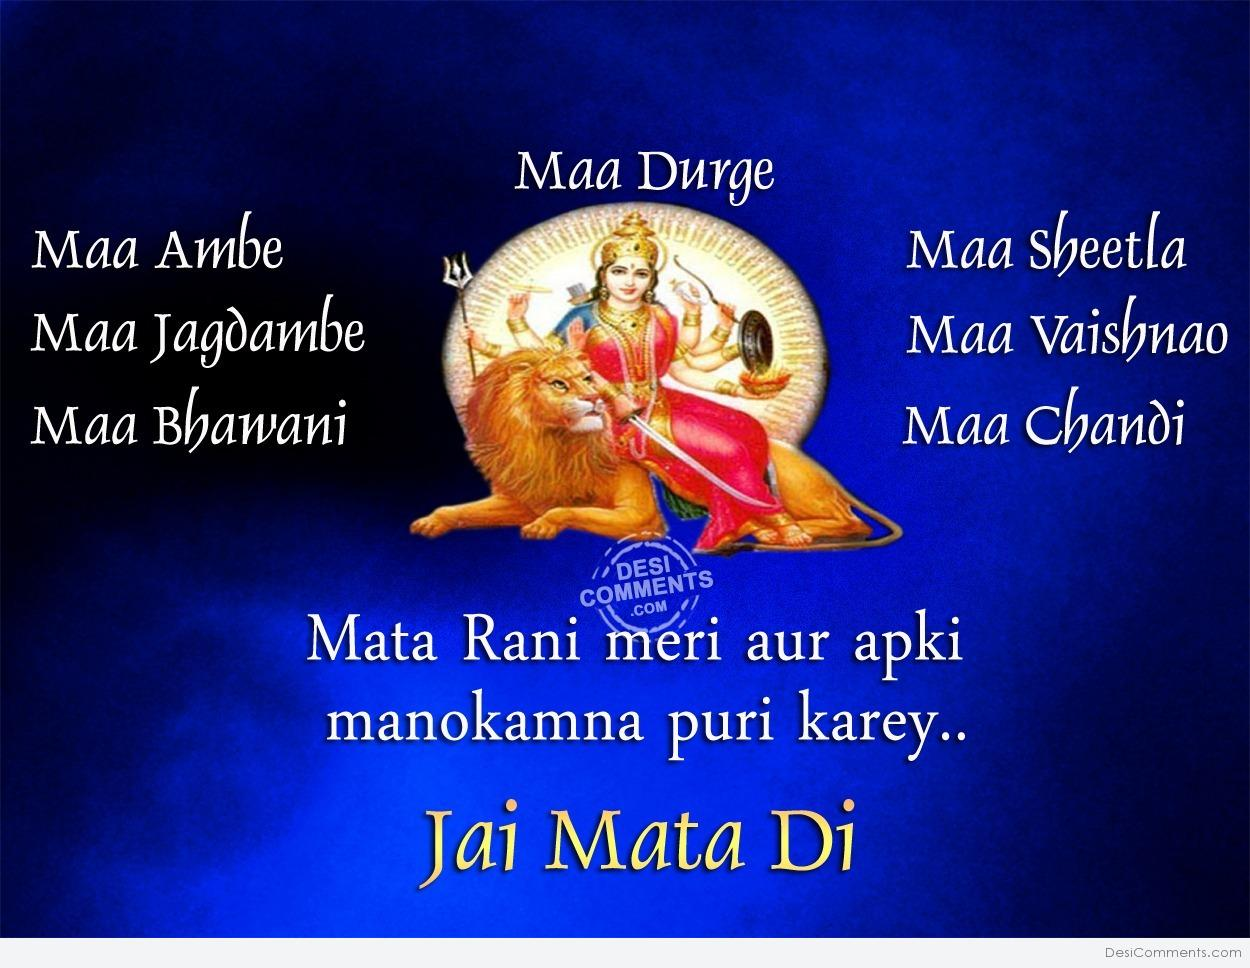 Sad Love Hd Wallpapers With Quotes In Hindi Mata Rani Names Desicomments Com